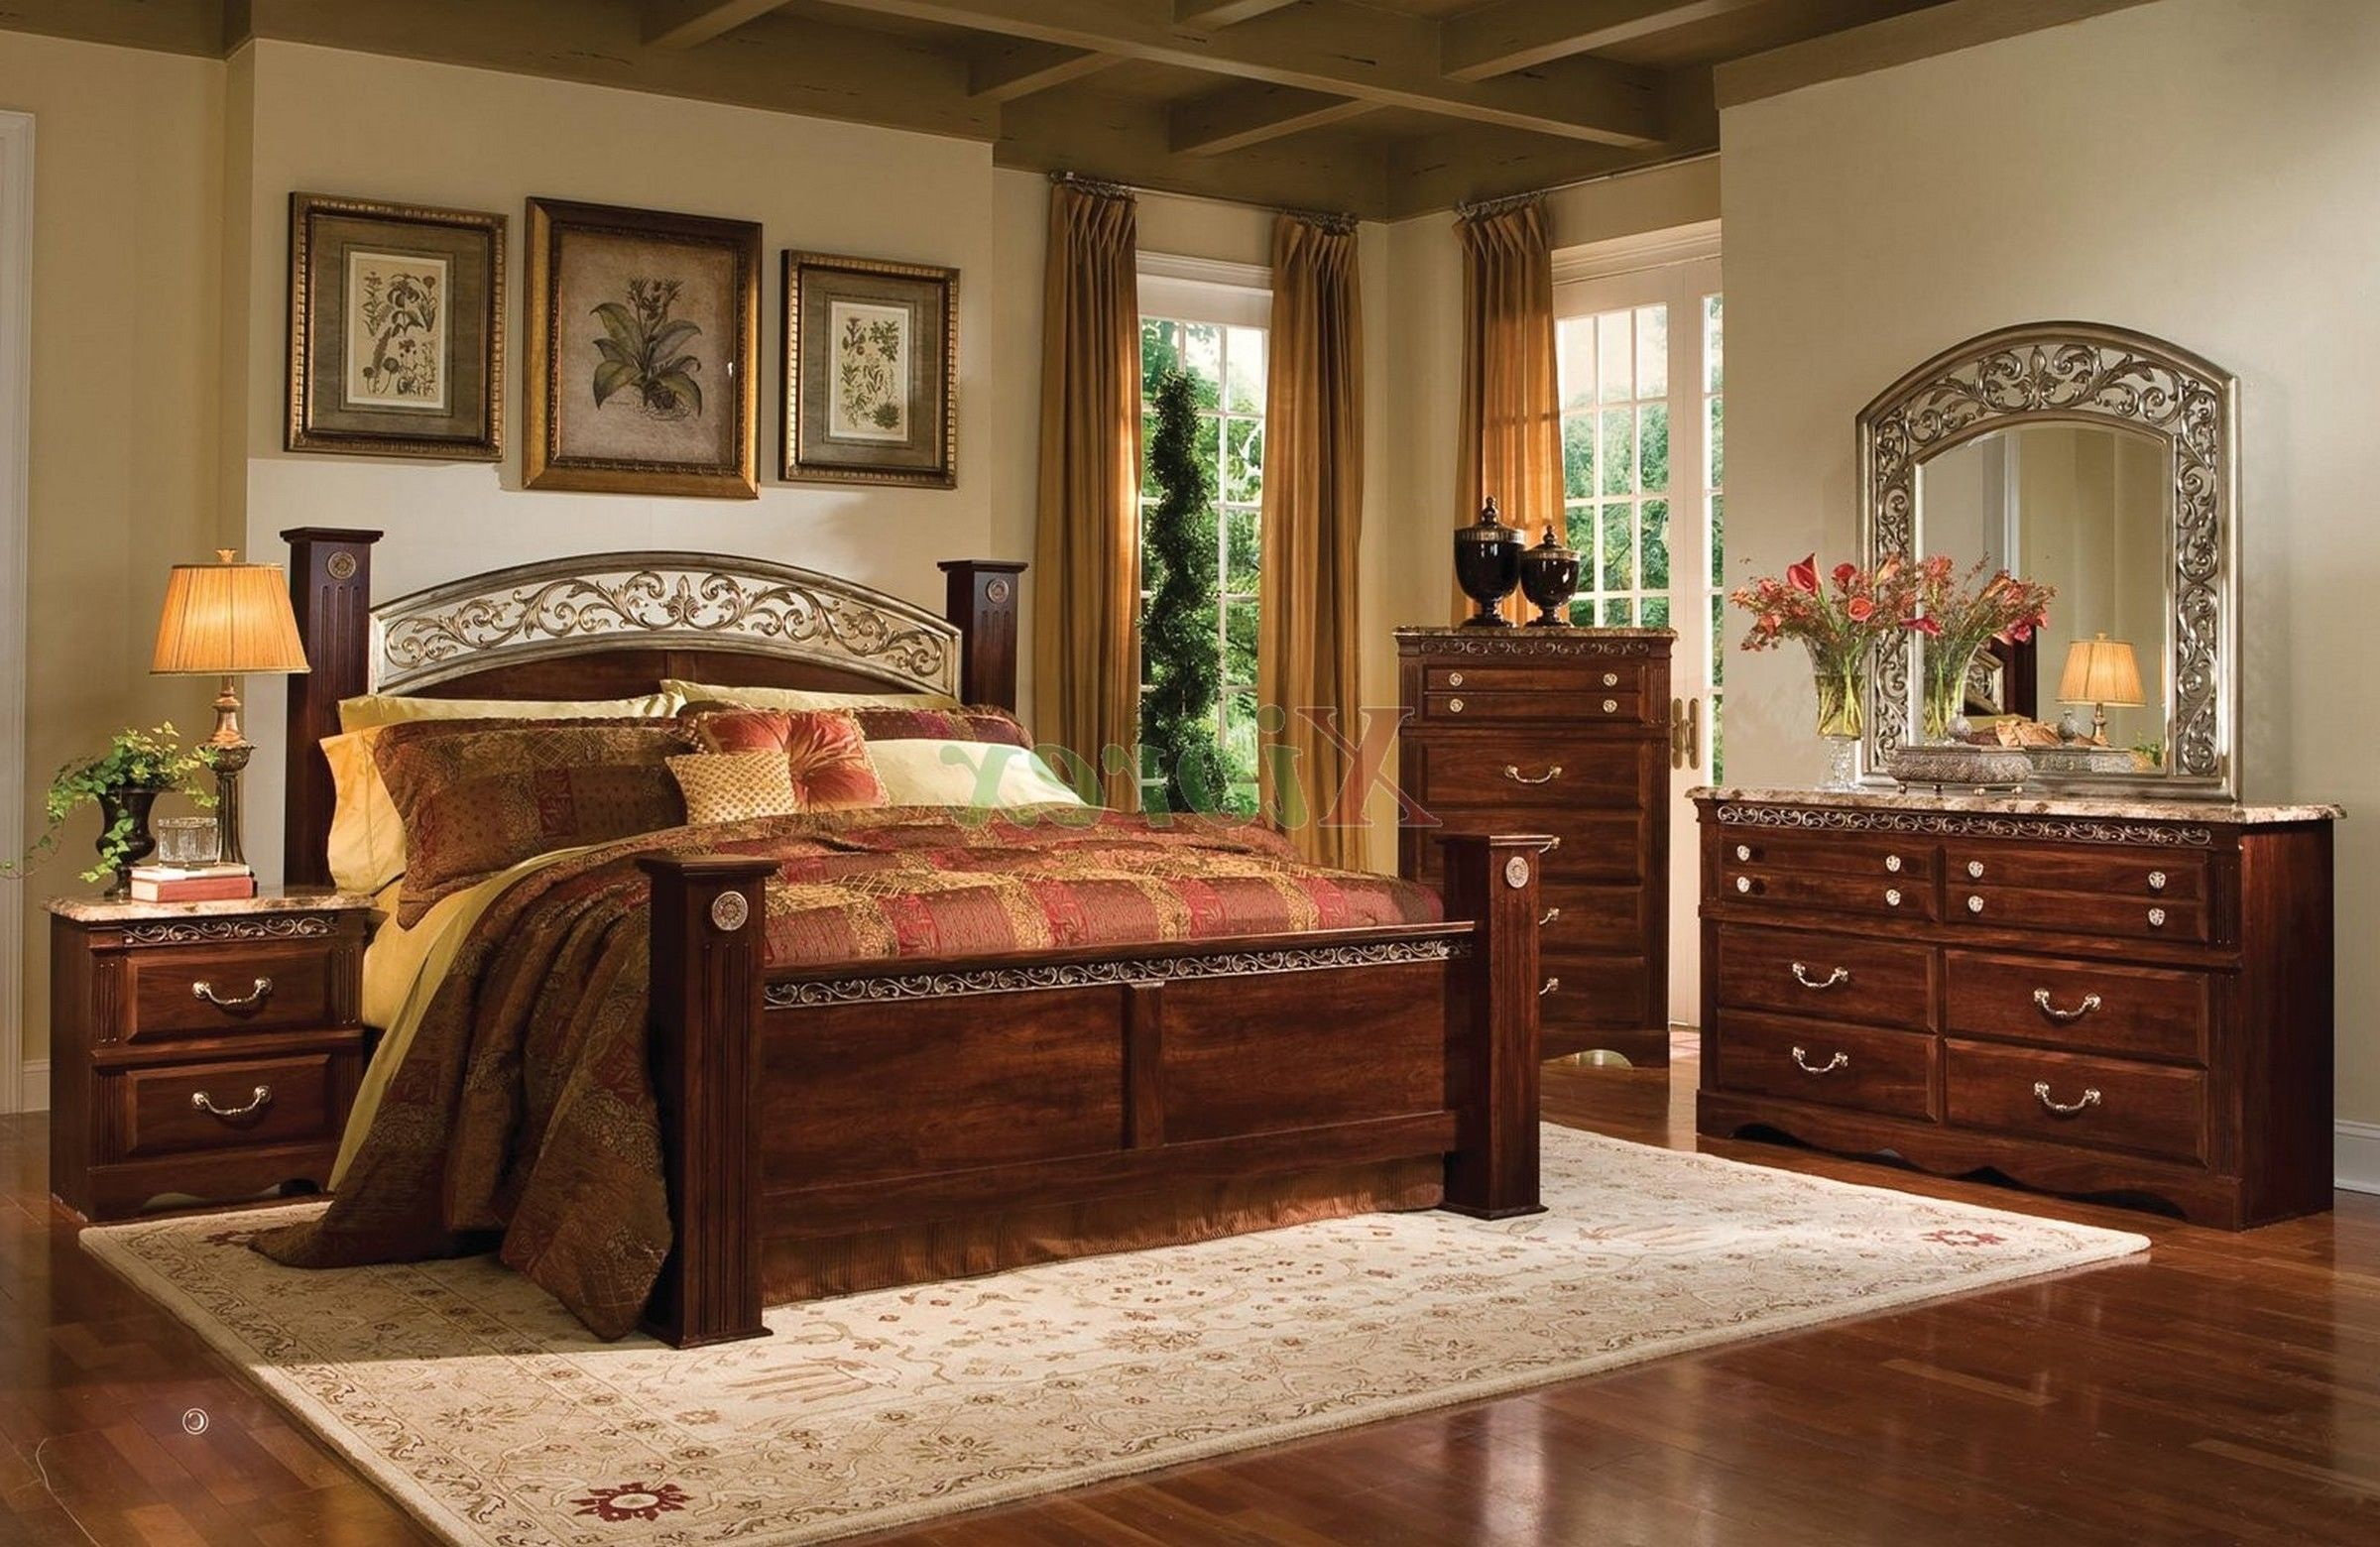 Wood Furniture Bedroom Design #picture1 | Bedroom Furniture ...